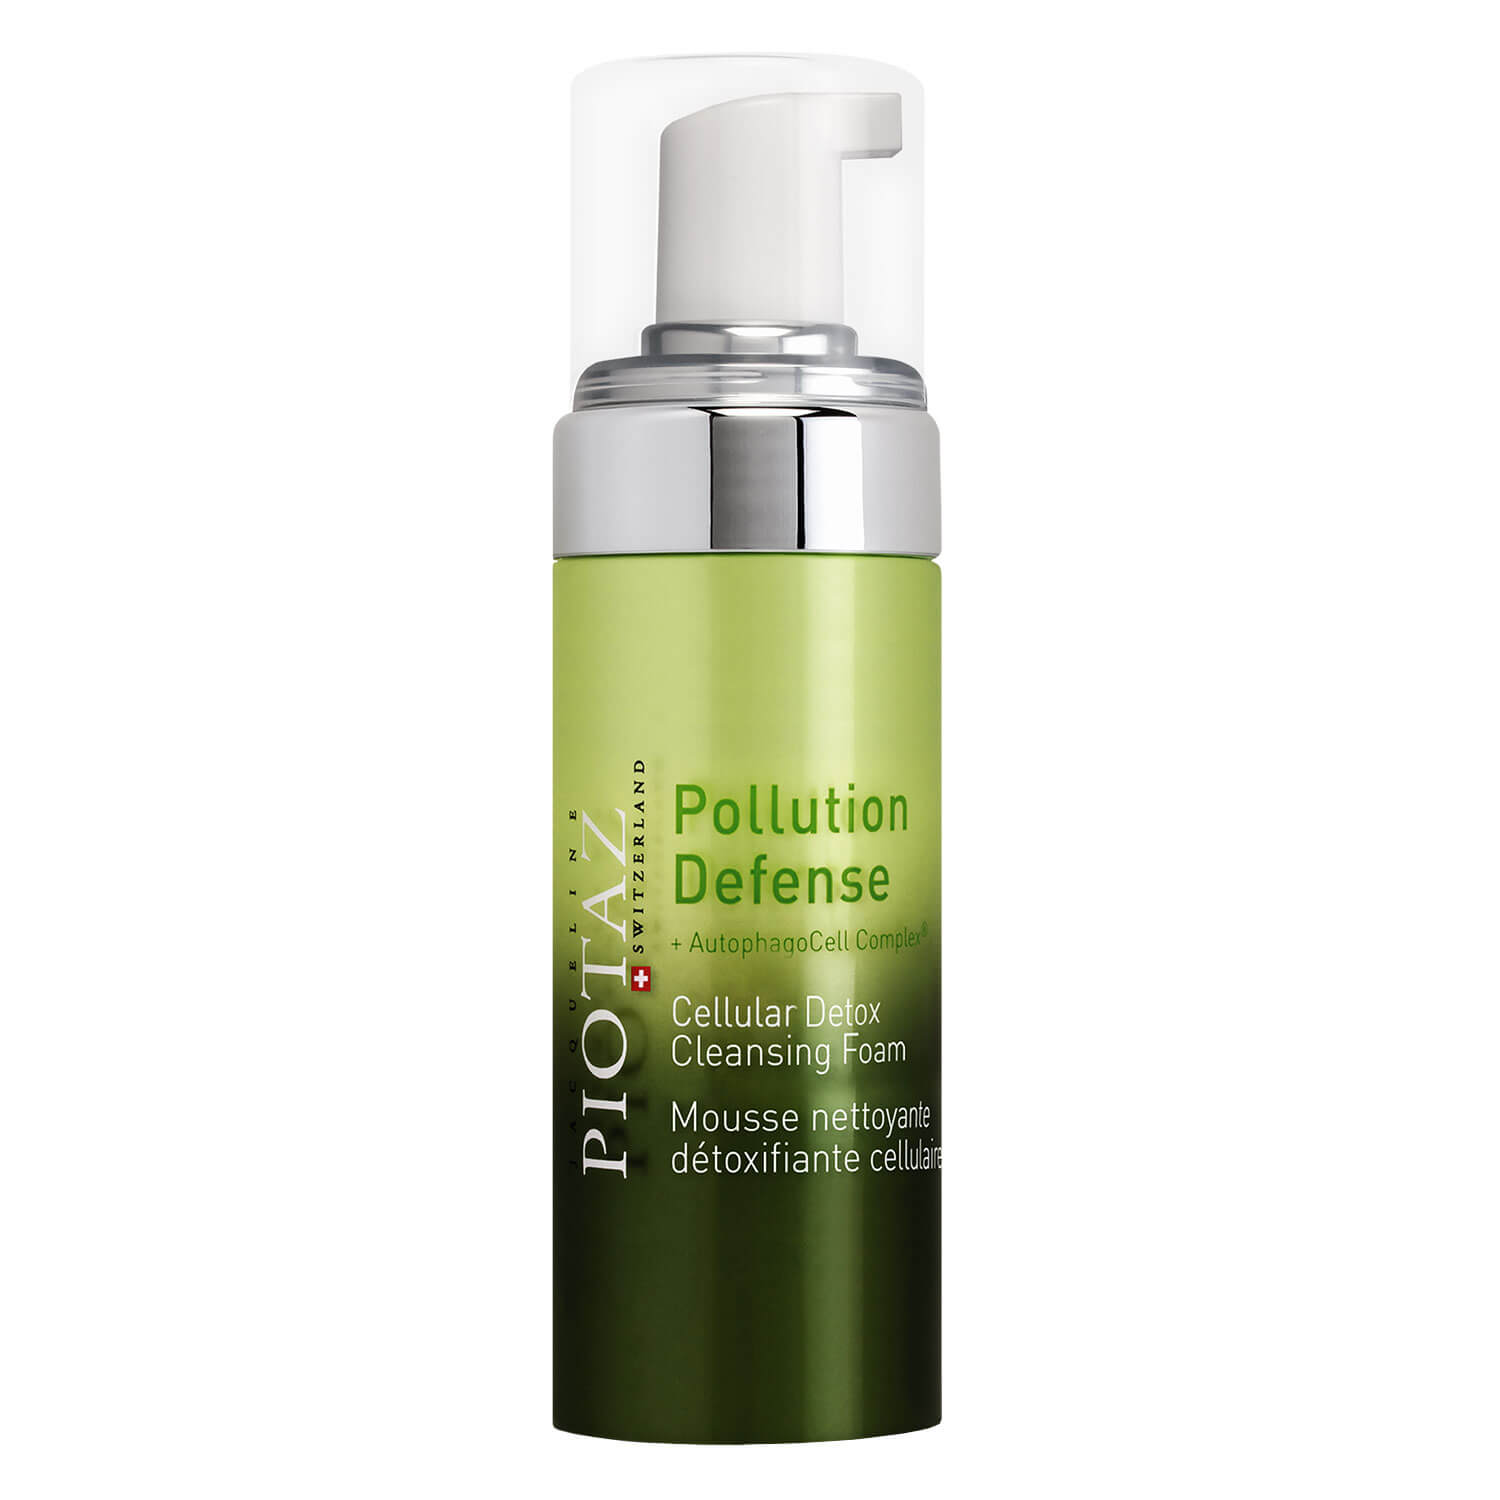 Pollution Defense - The CellDetox Cleansing Foam